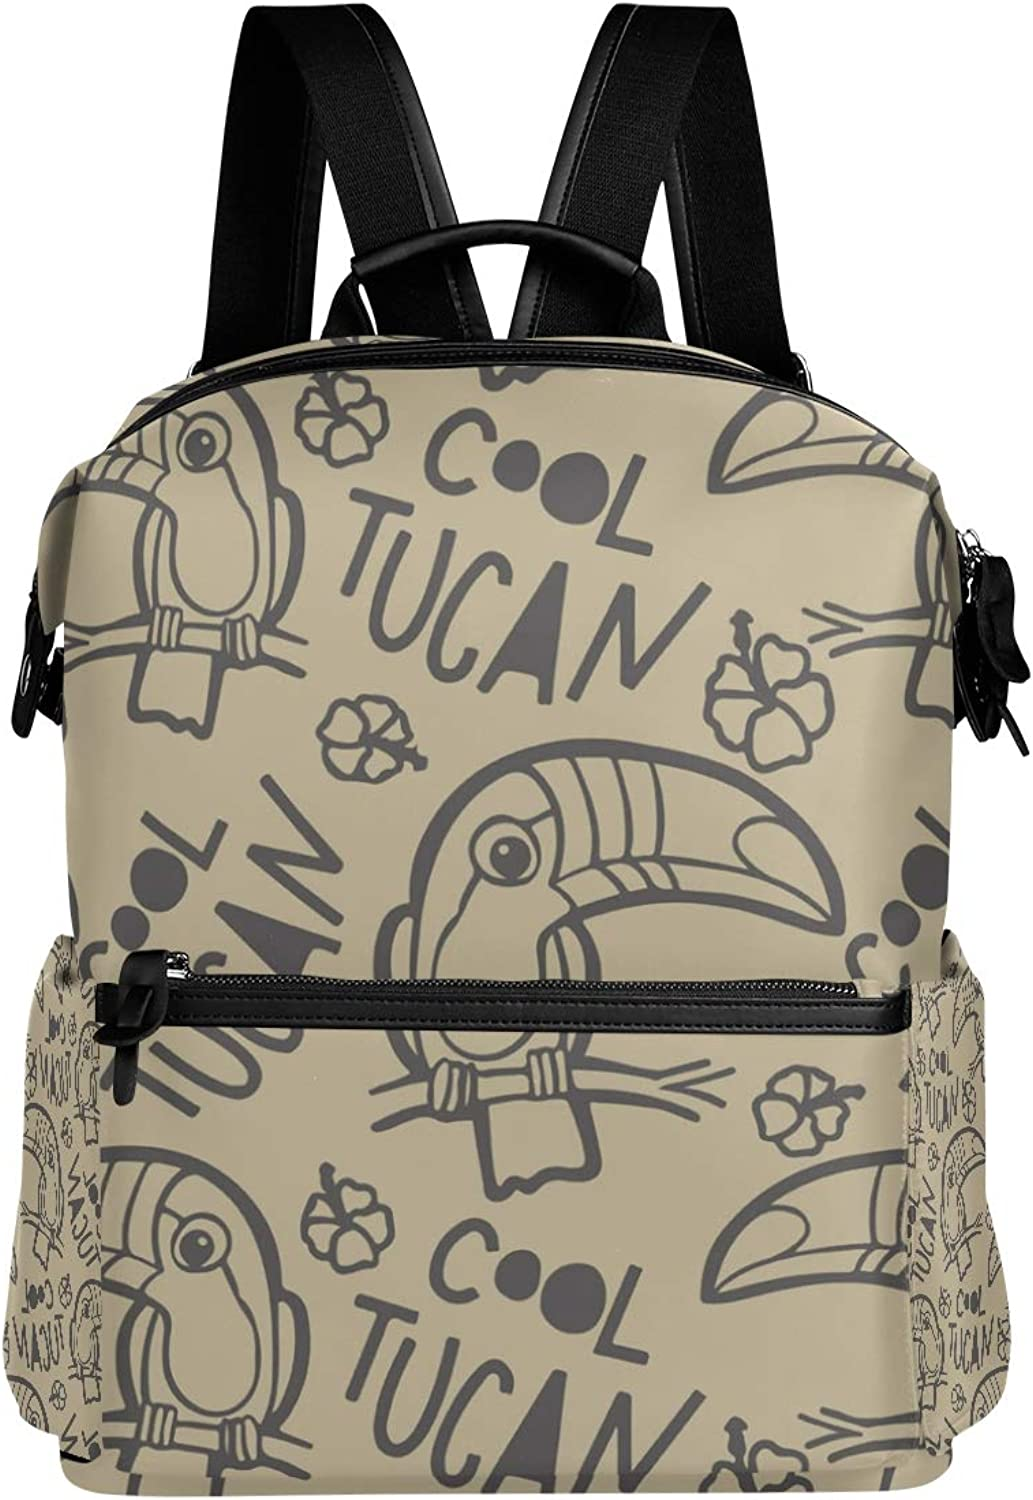 MONTOJ Cool Toucan Bird Party Leather Travel Bag Campus Backpack